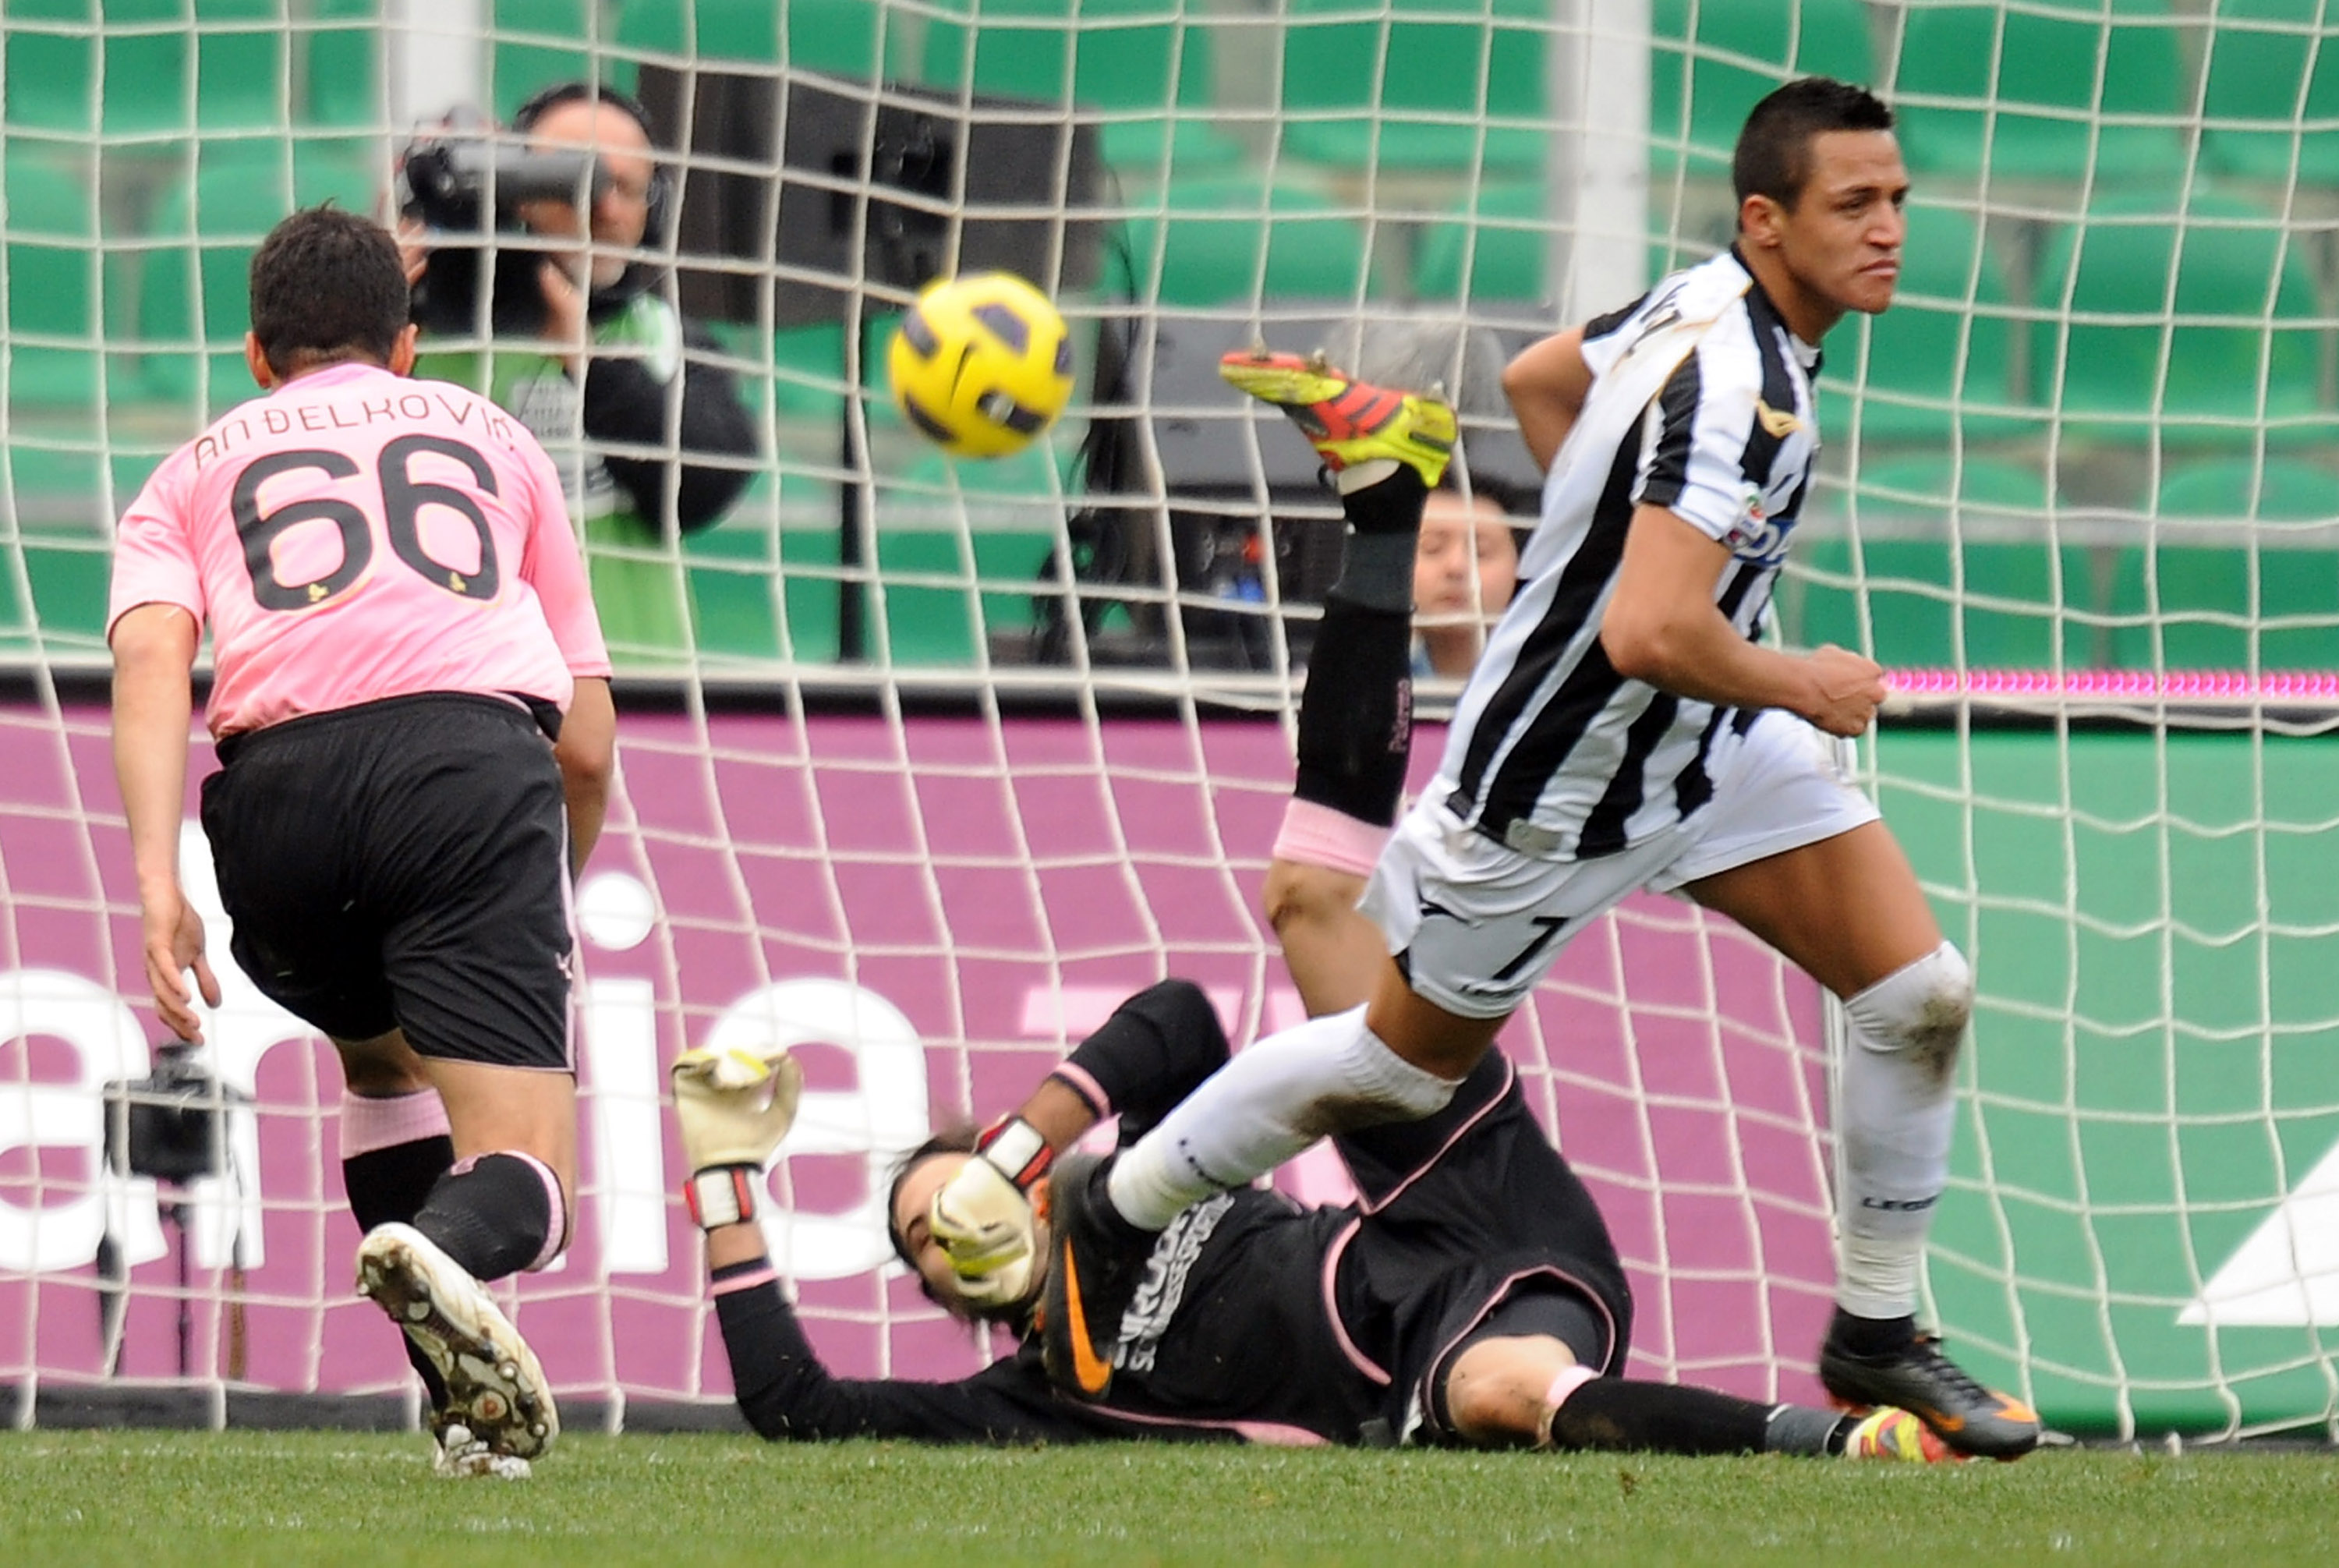 PALERMO, ITALY - FEBRUARY 27:  Alexis Sanchez (C) of Udinese scores his team's fifth goal during the Serie A match between US Citta di Palermo and Udinese Calcio at Stadio Renzo Barbera on February 27, 2011 in Palermo, Italy.  (Photo by Tullio M. Puglia/G